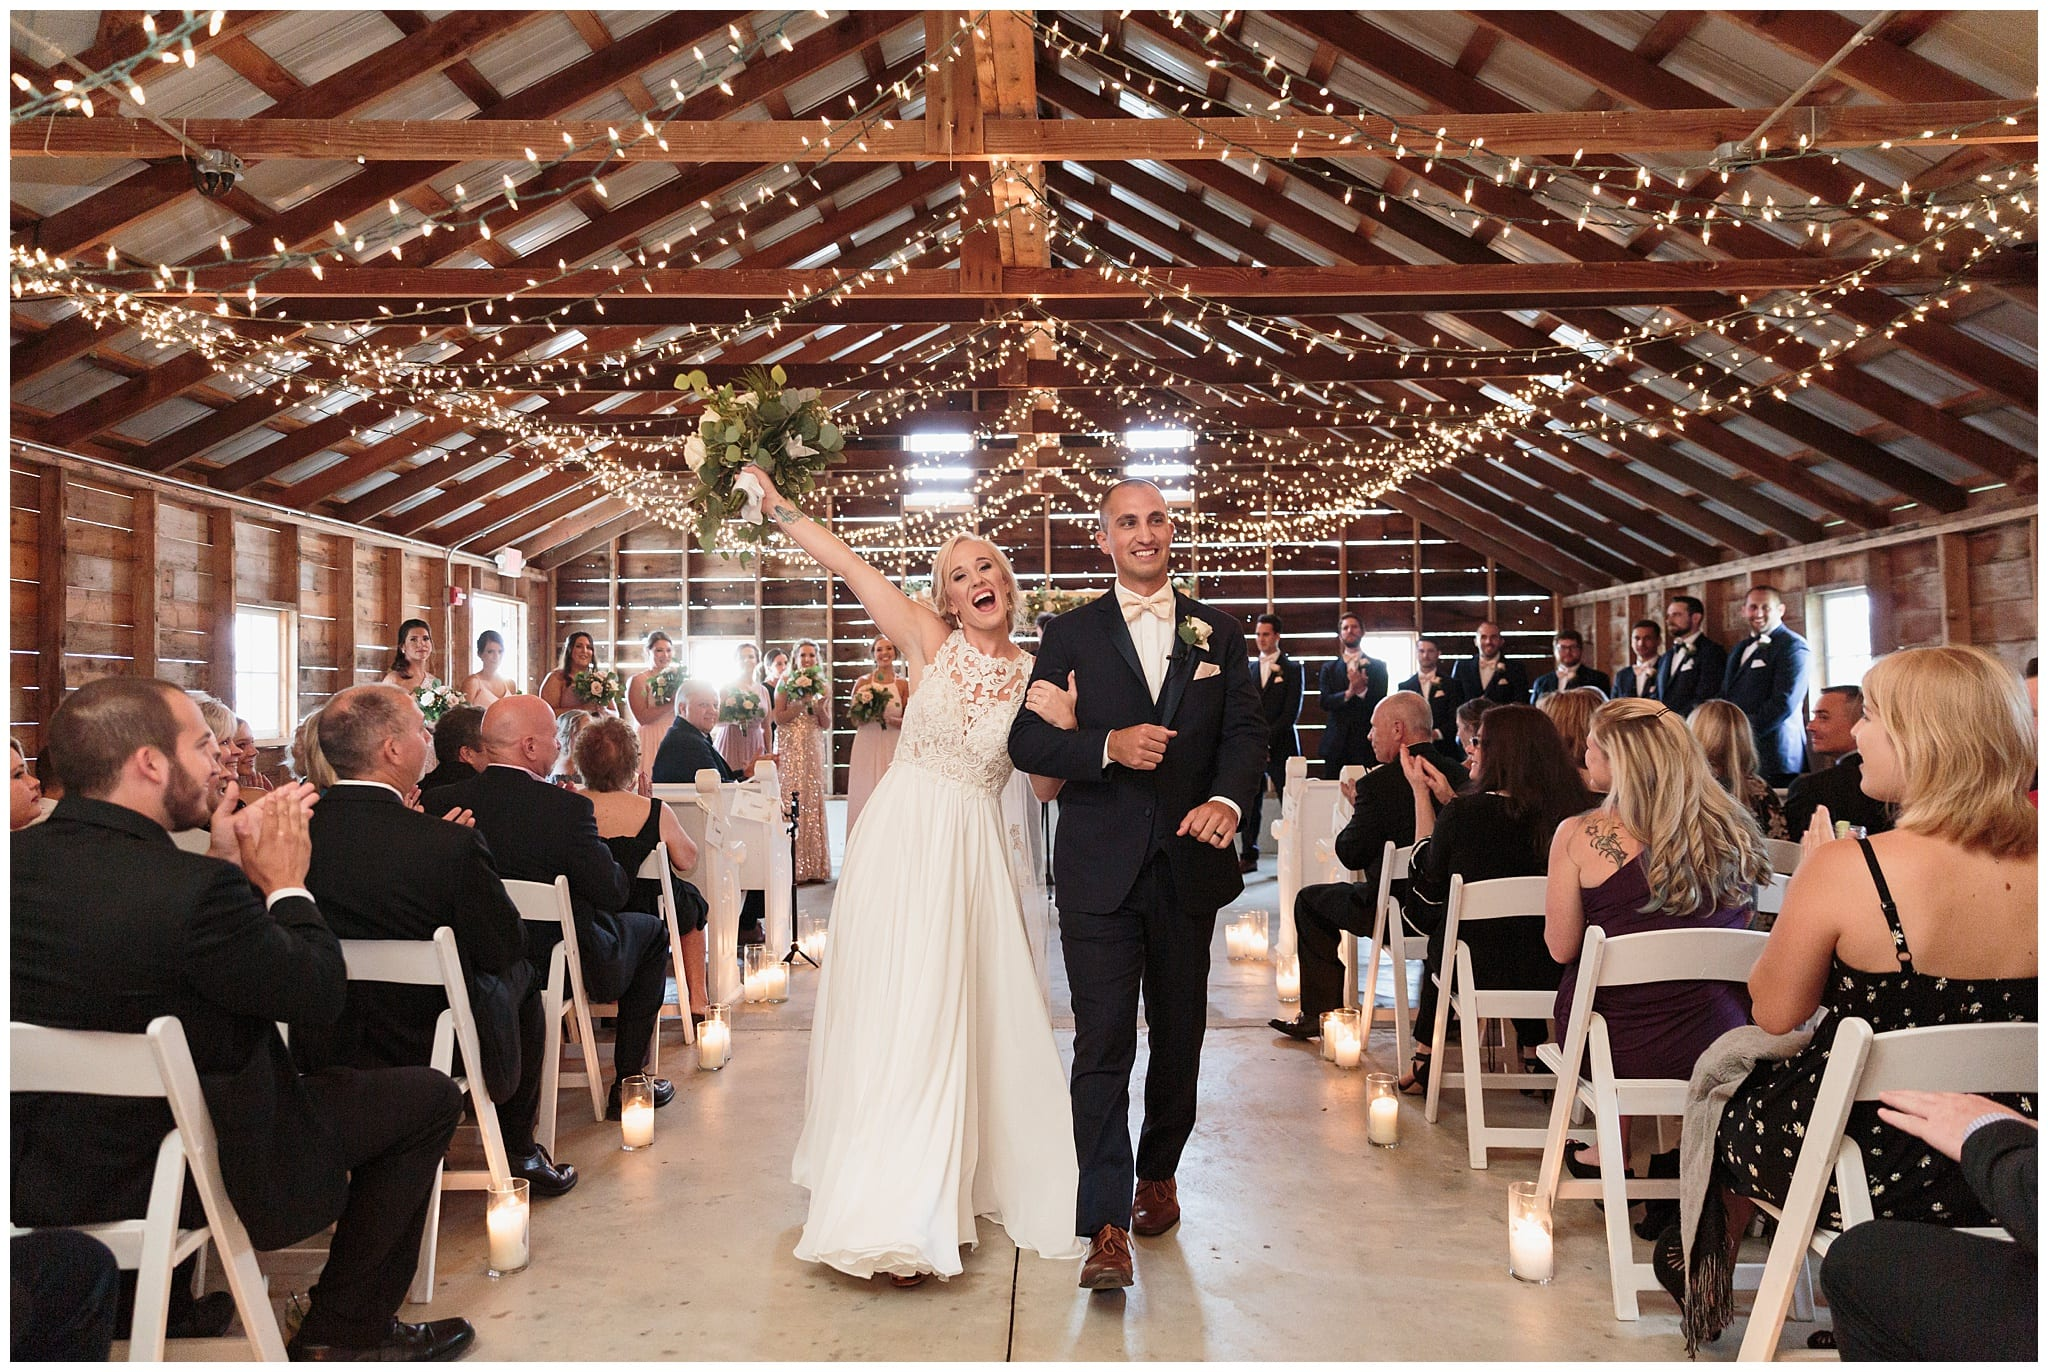 Heritage Prairie Farms Wedding - Wes Craft Photography